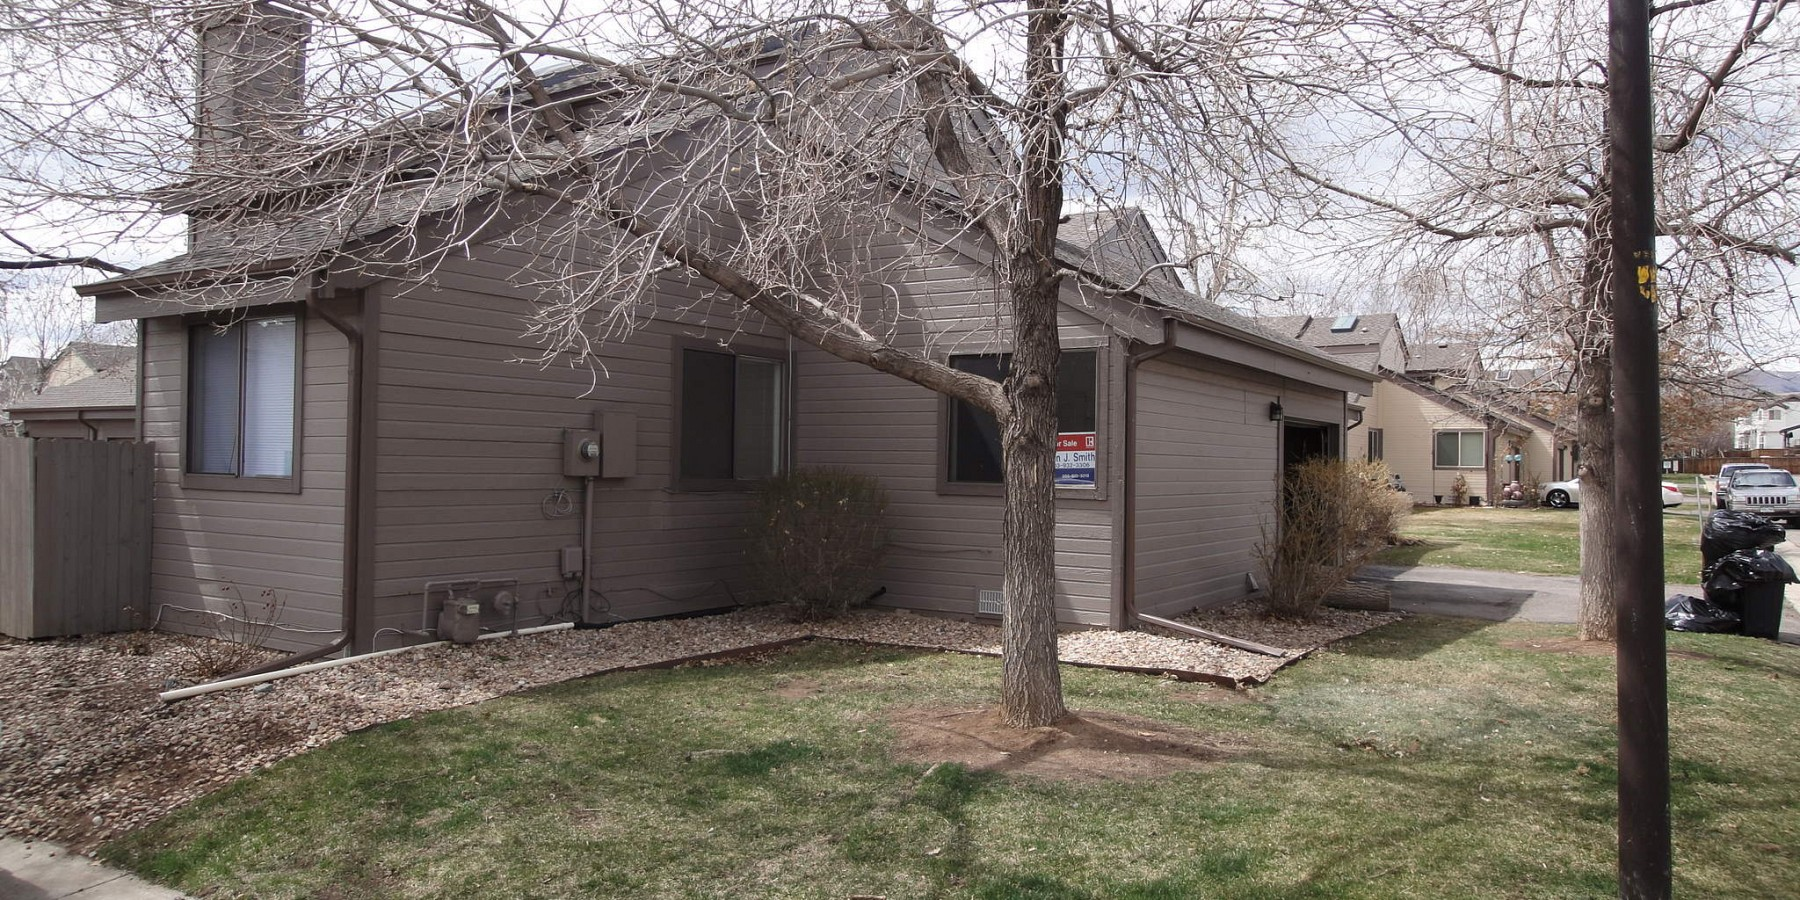 8364 South Everett Way, Littleton, CO 80128